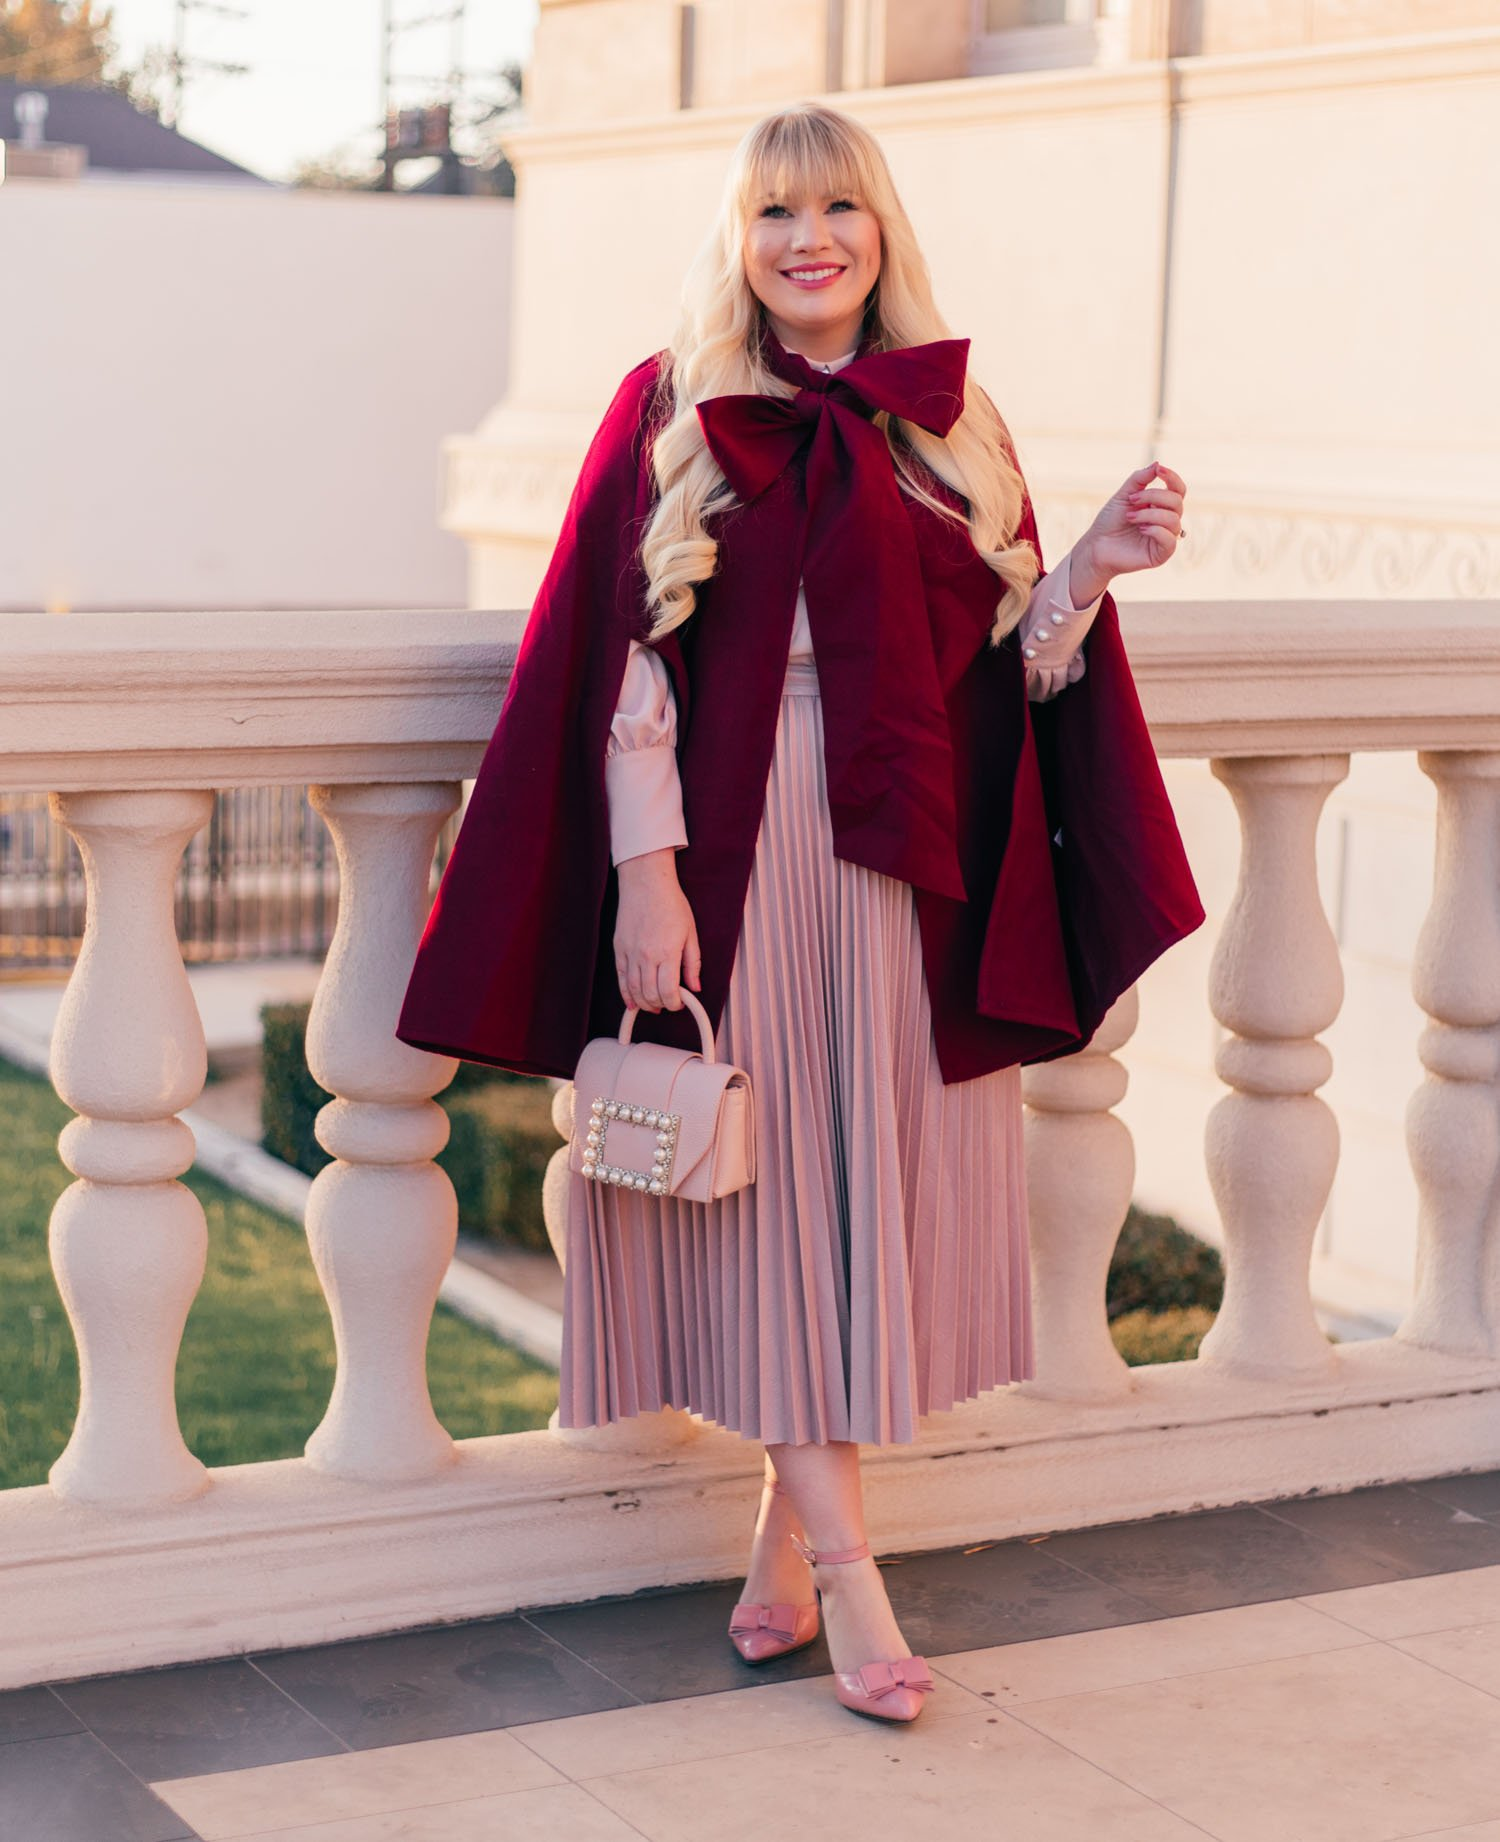 Elizabeth Hugen of Lizzie in Lace shares how to style a cape for fall with this red cape outfit idea!